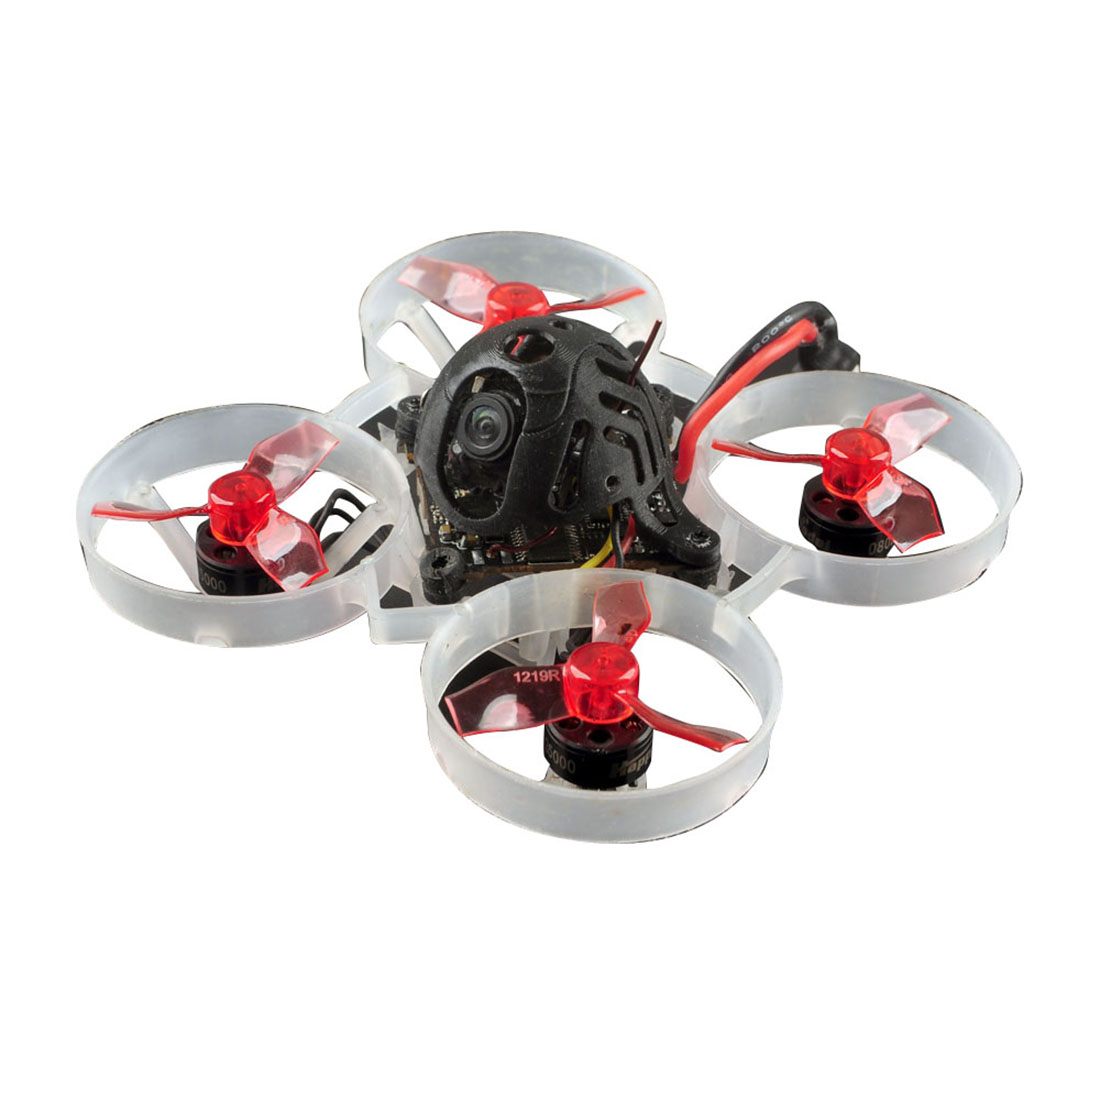 Mini FPV Racing Drone Mobula6 Mobula 6 65mm Brushless Bwhoop FPVAIO <font><b>4in1</b></font> Crazybee F4 Lite Runcam Nano3 12pairs Props No Battery image